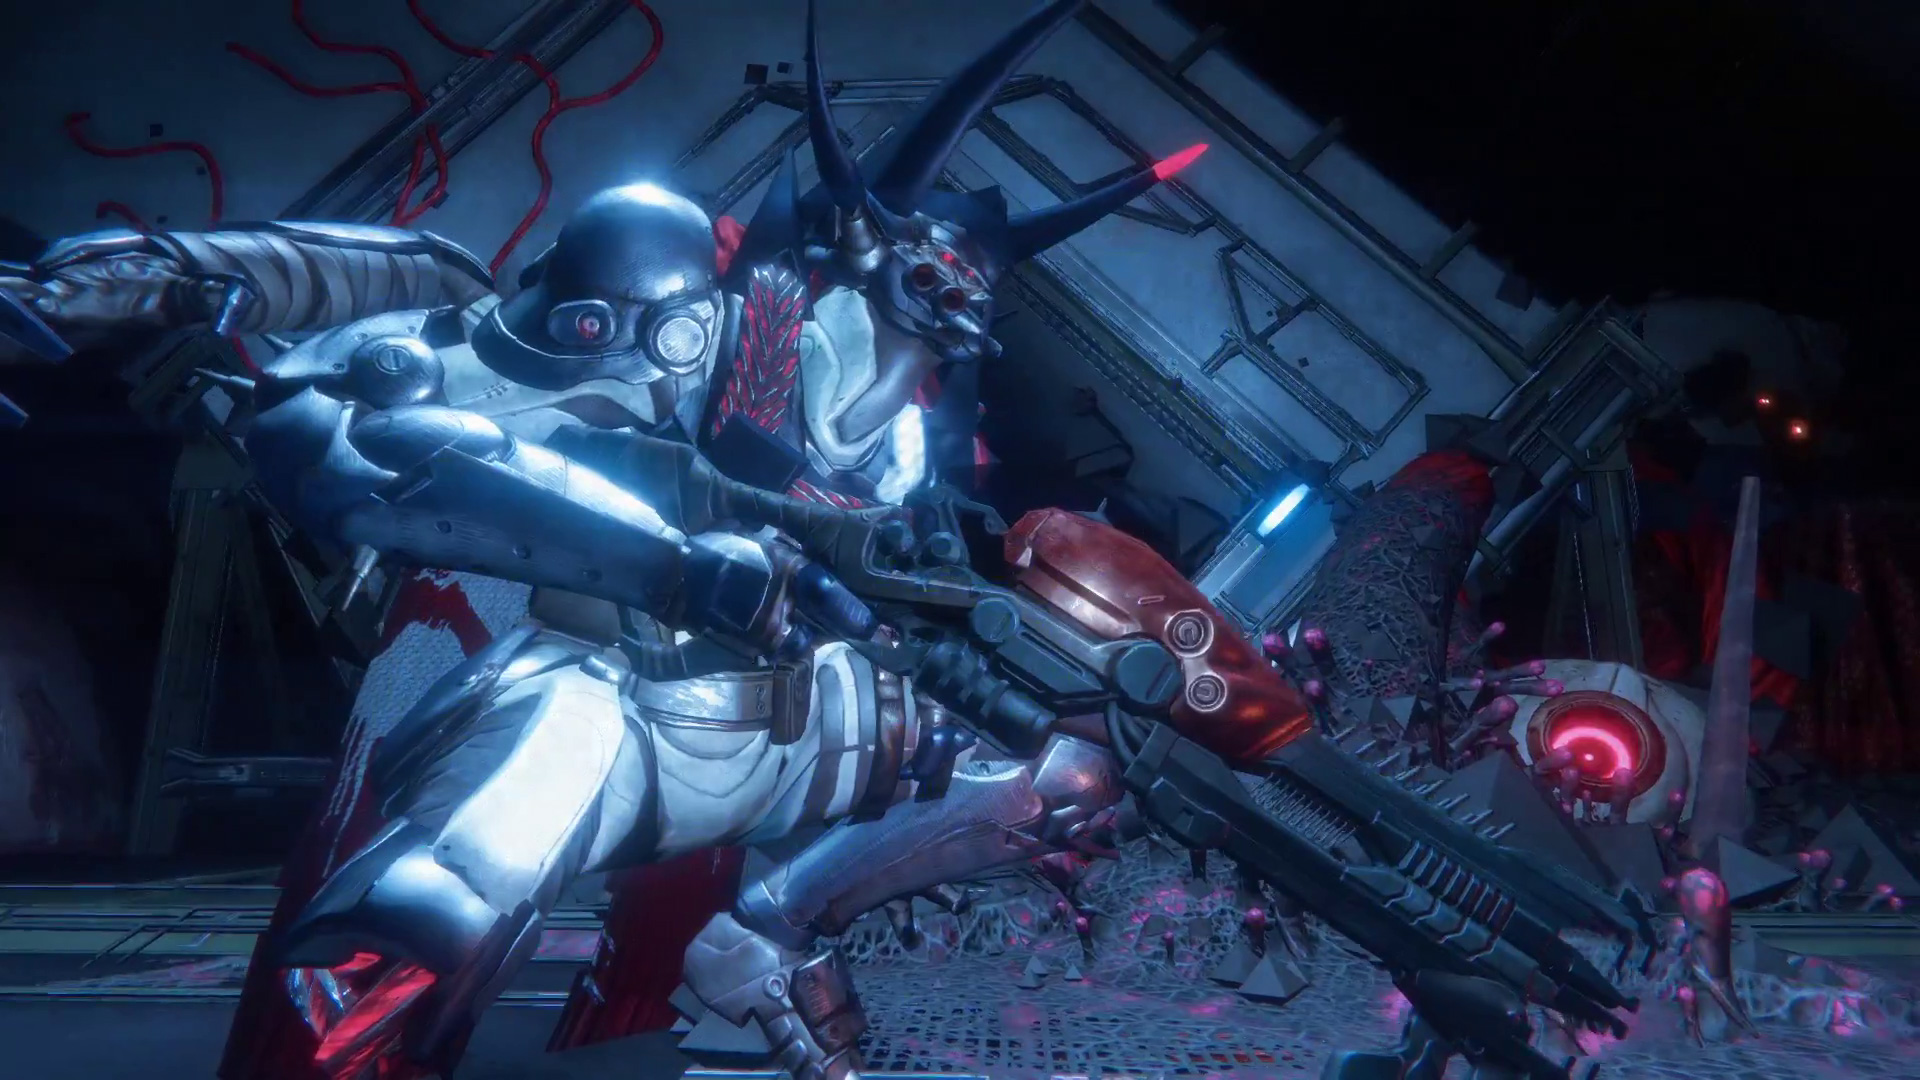 Destiny 2's Forsaken expansion could be hinting at a Fallen